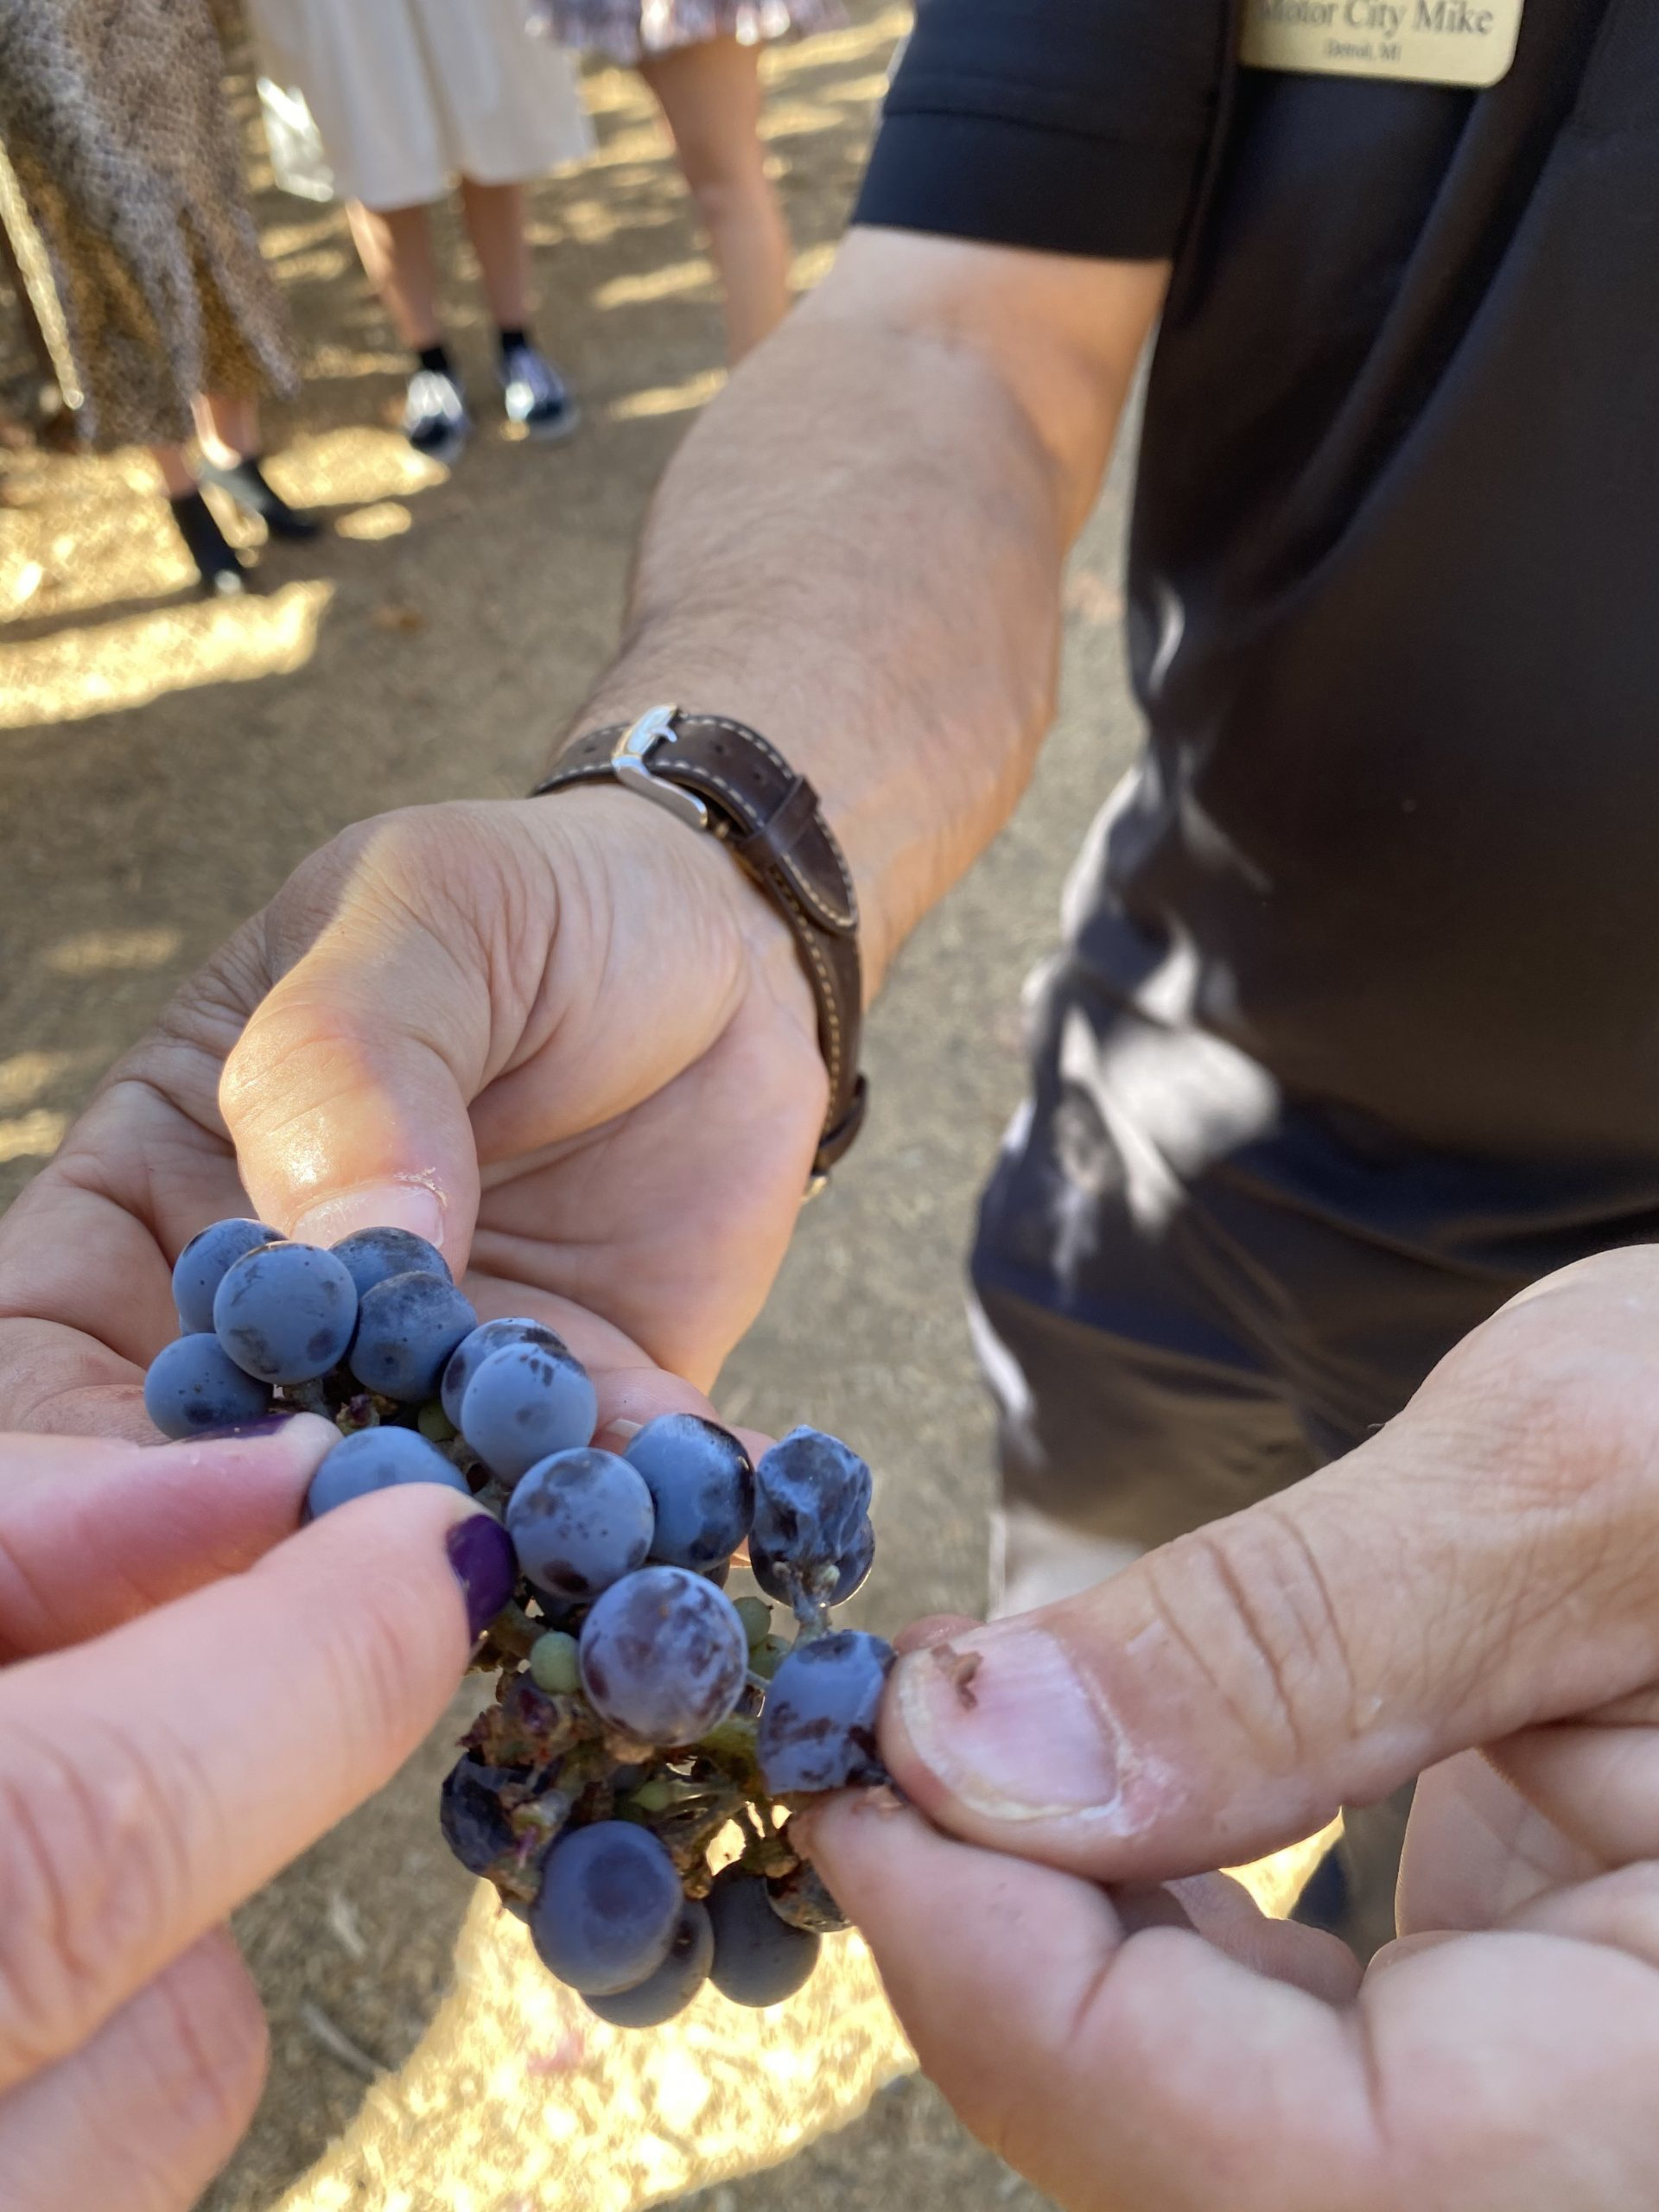 Grapes from the Wilson Creek Winery